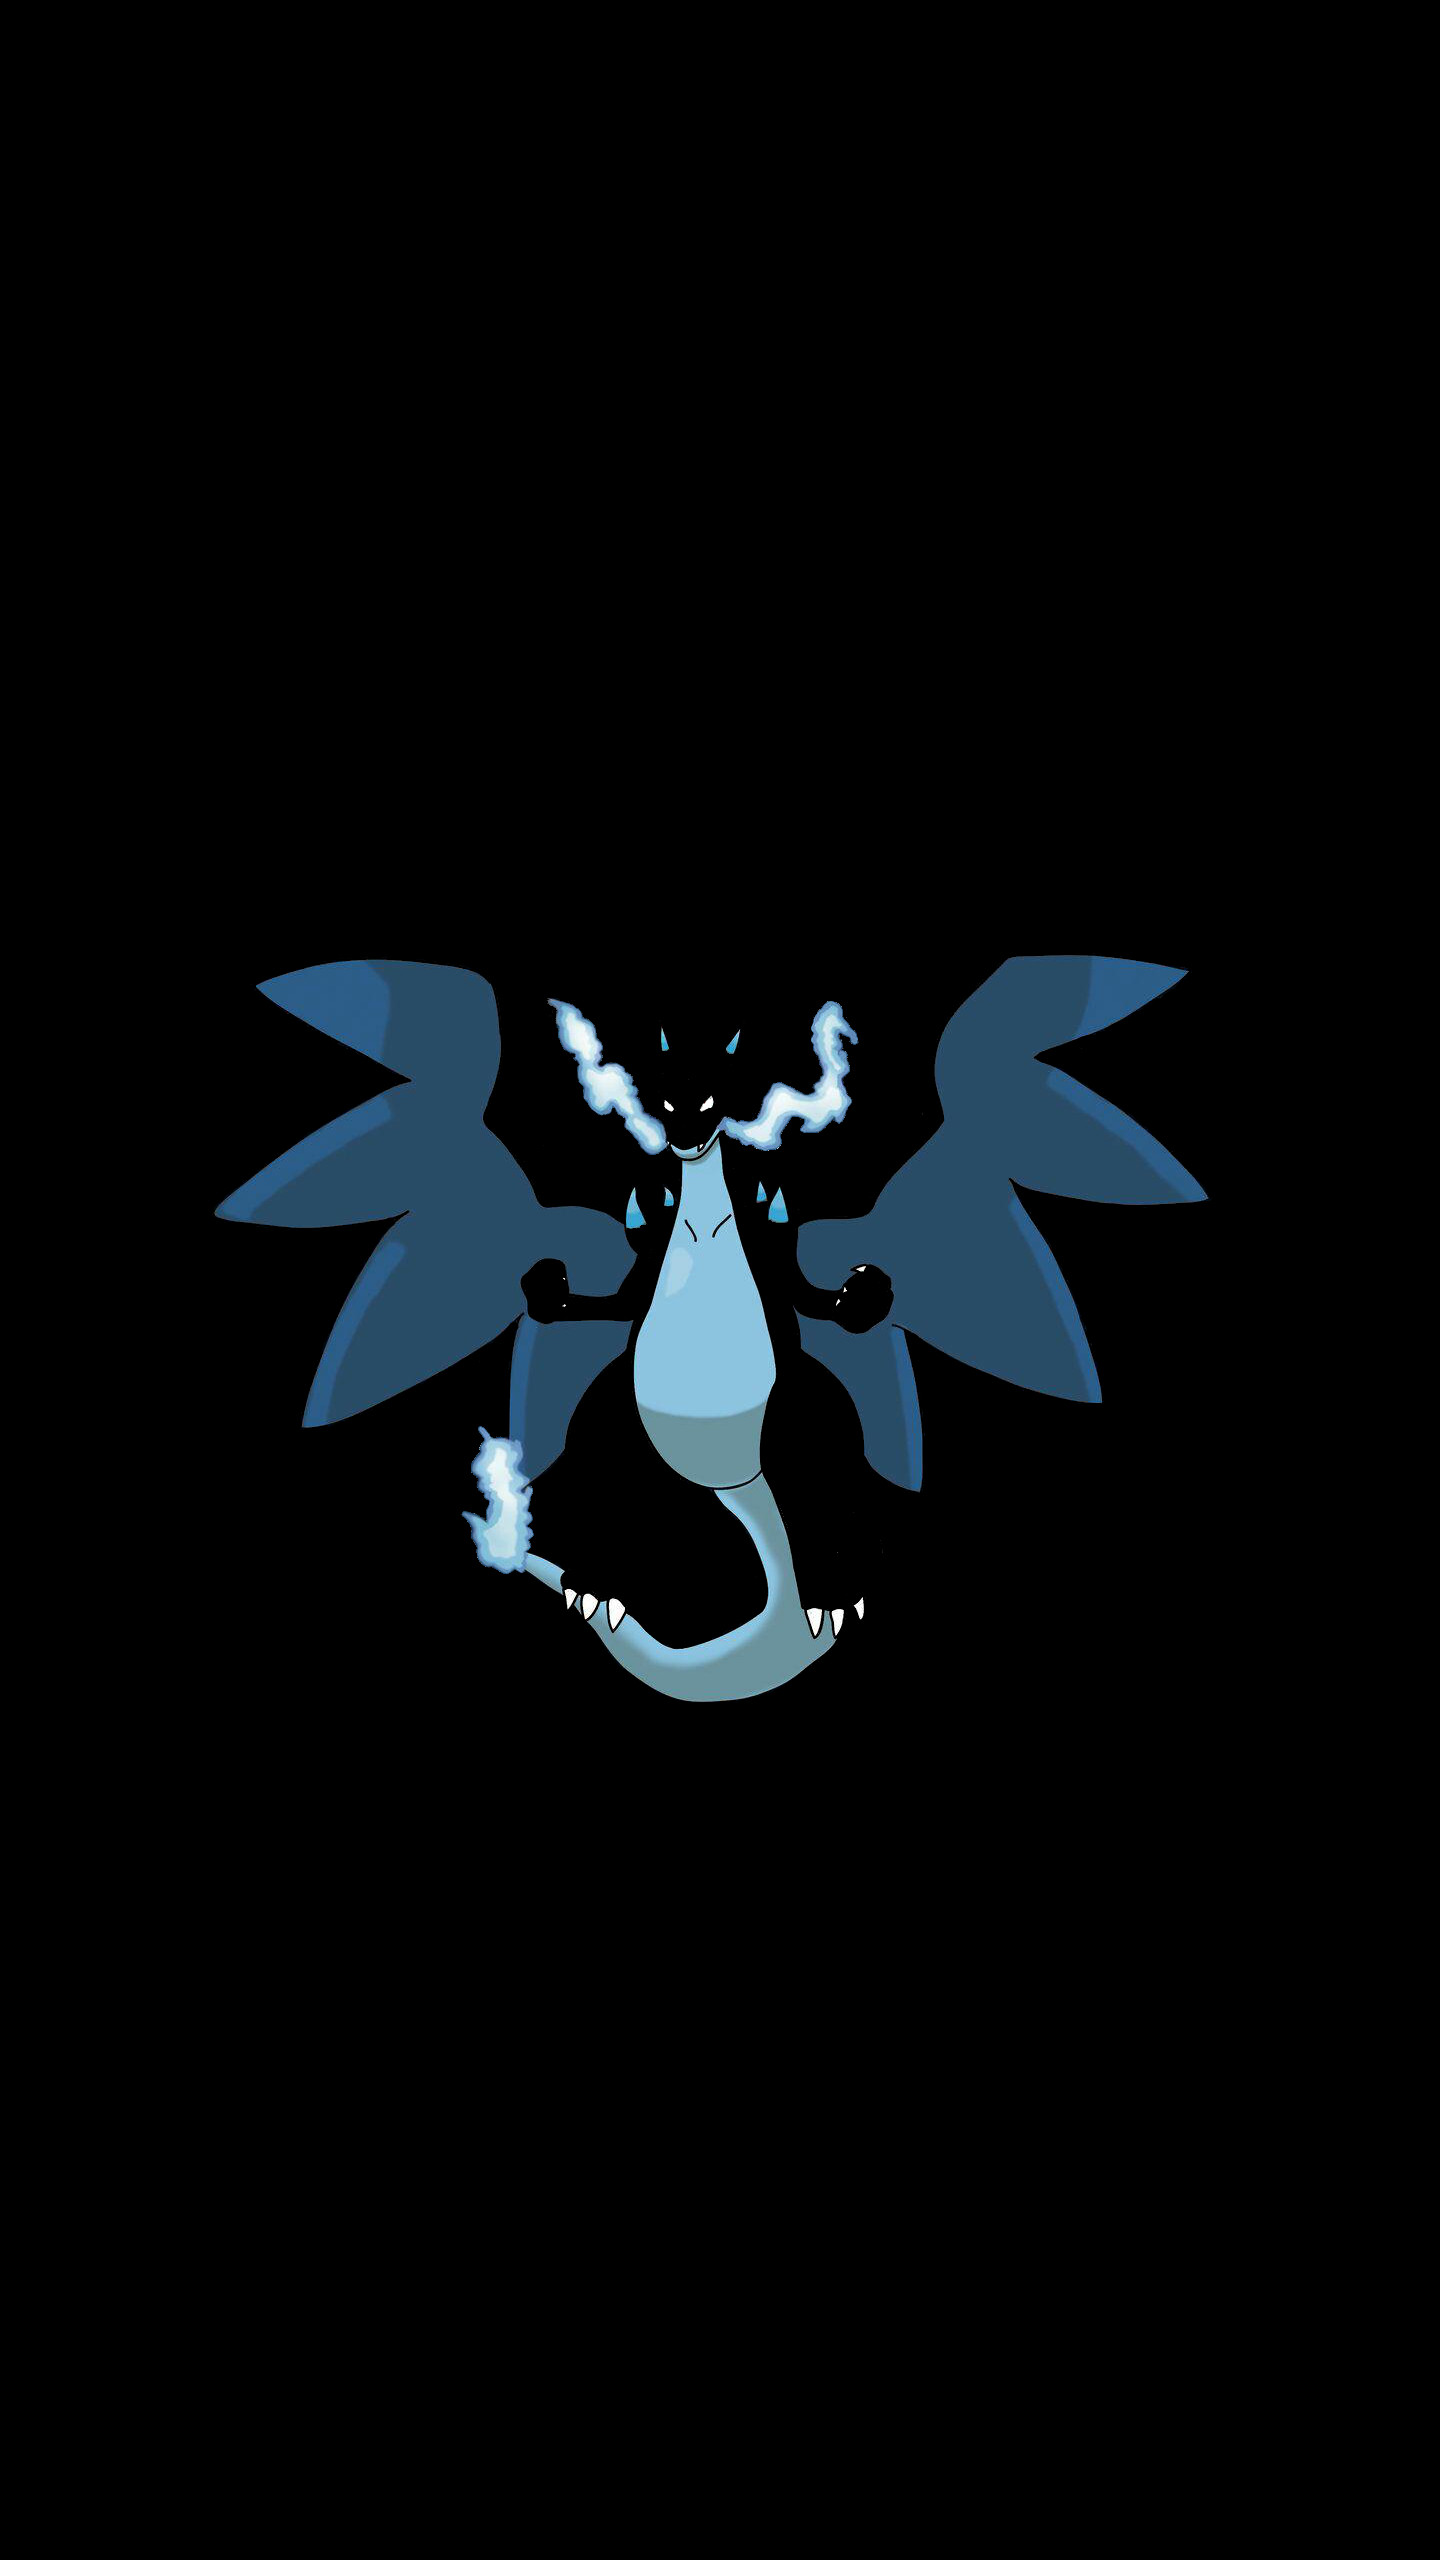 Charizard Wallpaper 69 Images